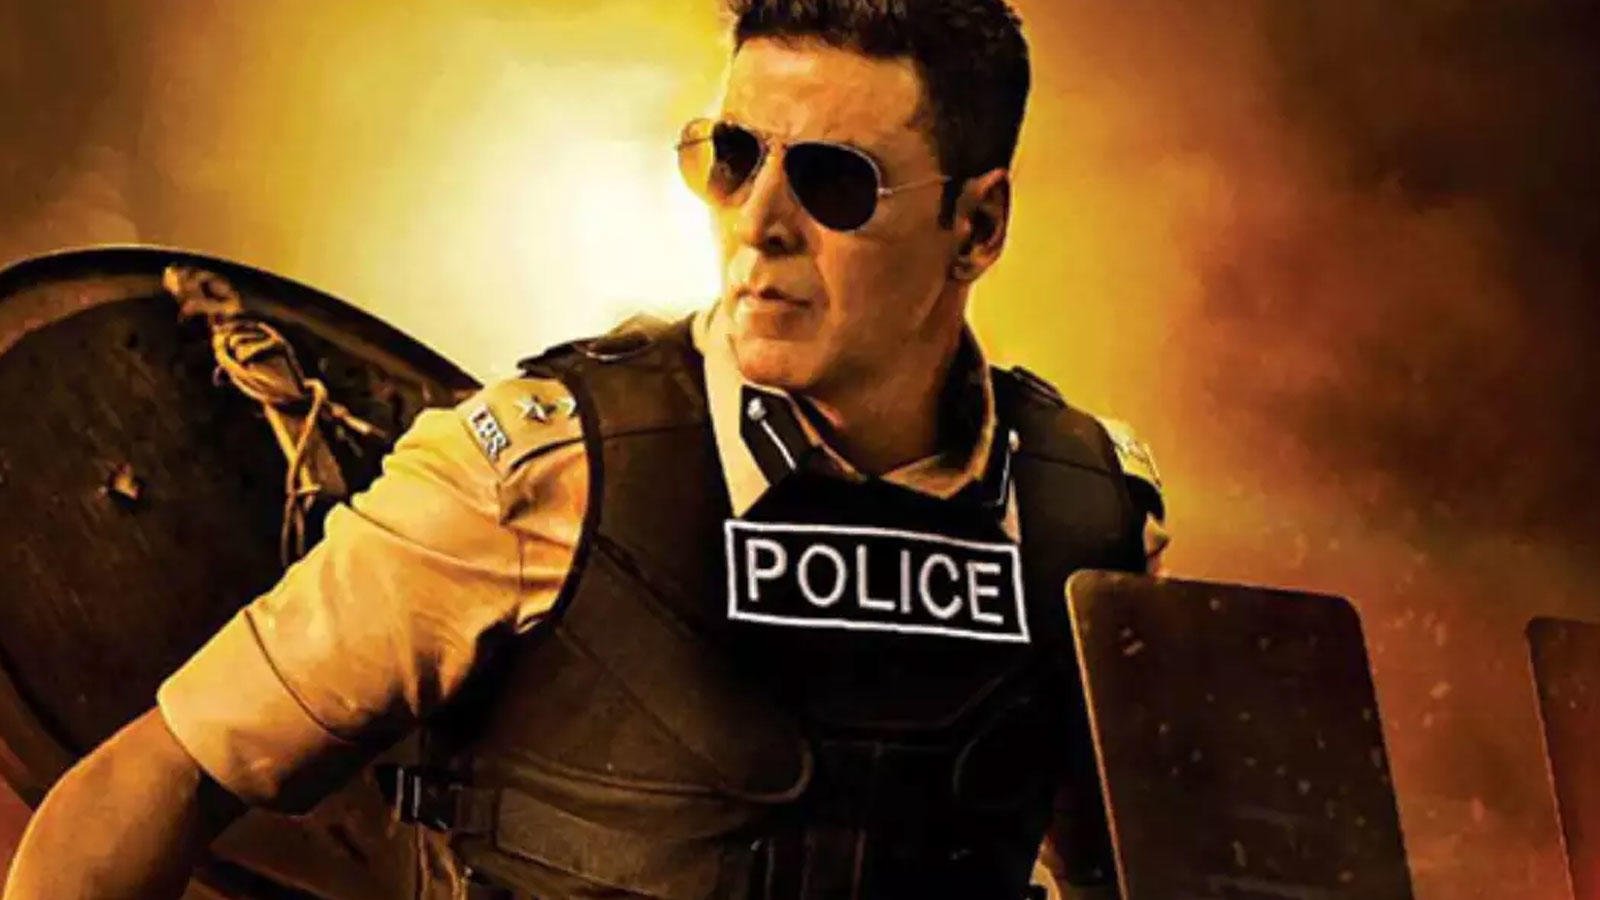 Akshay Kumar's 'Sooryavanshi' release date postponed again? | Hindi Movie News – Bollywood – Times of India